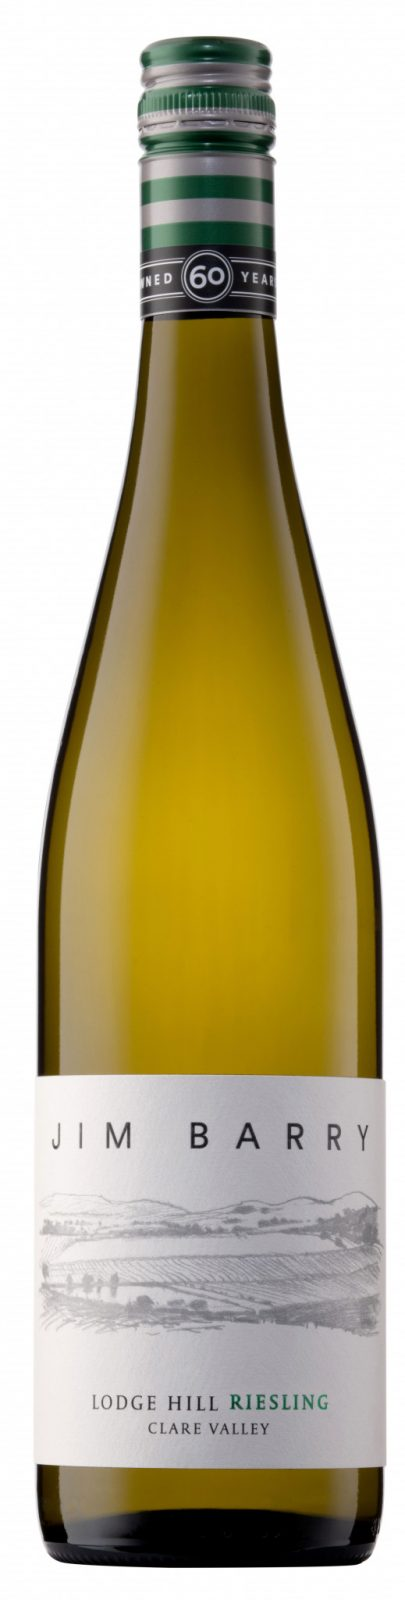 Jim Barry Lodge Hill Riesling